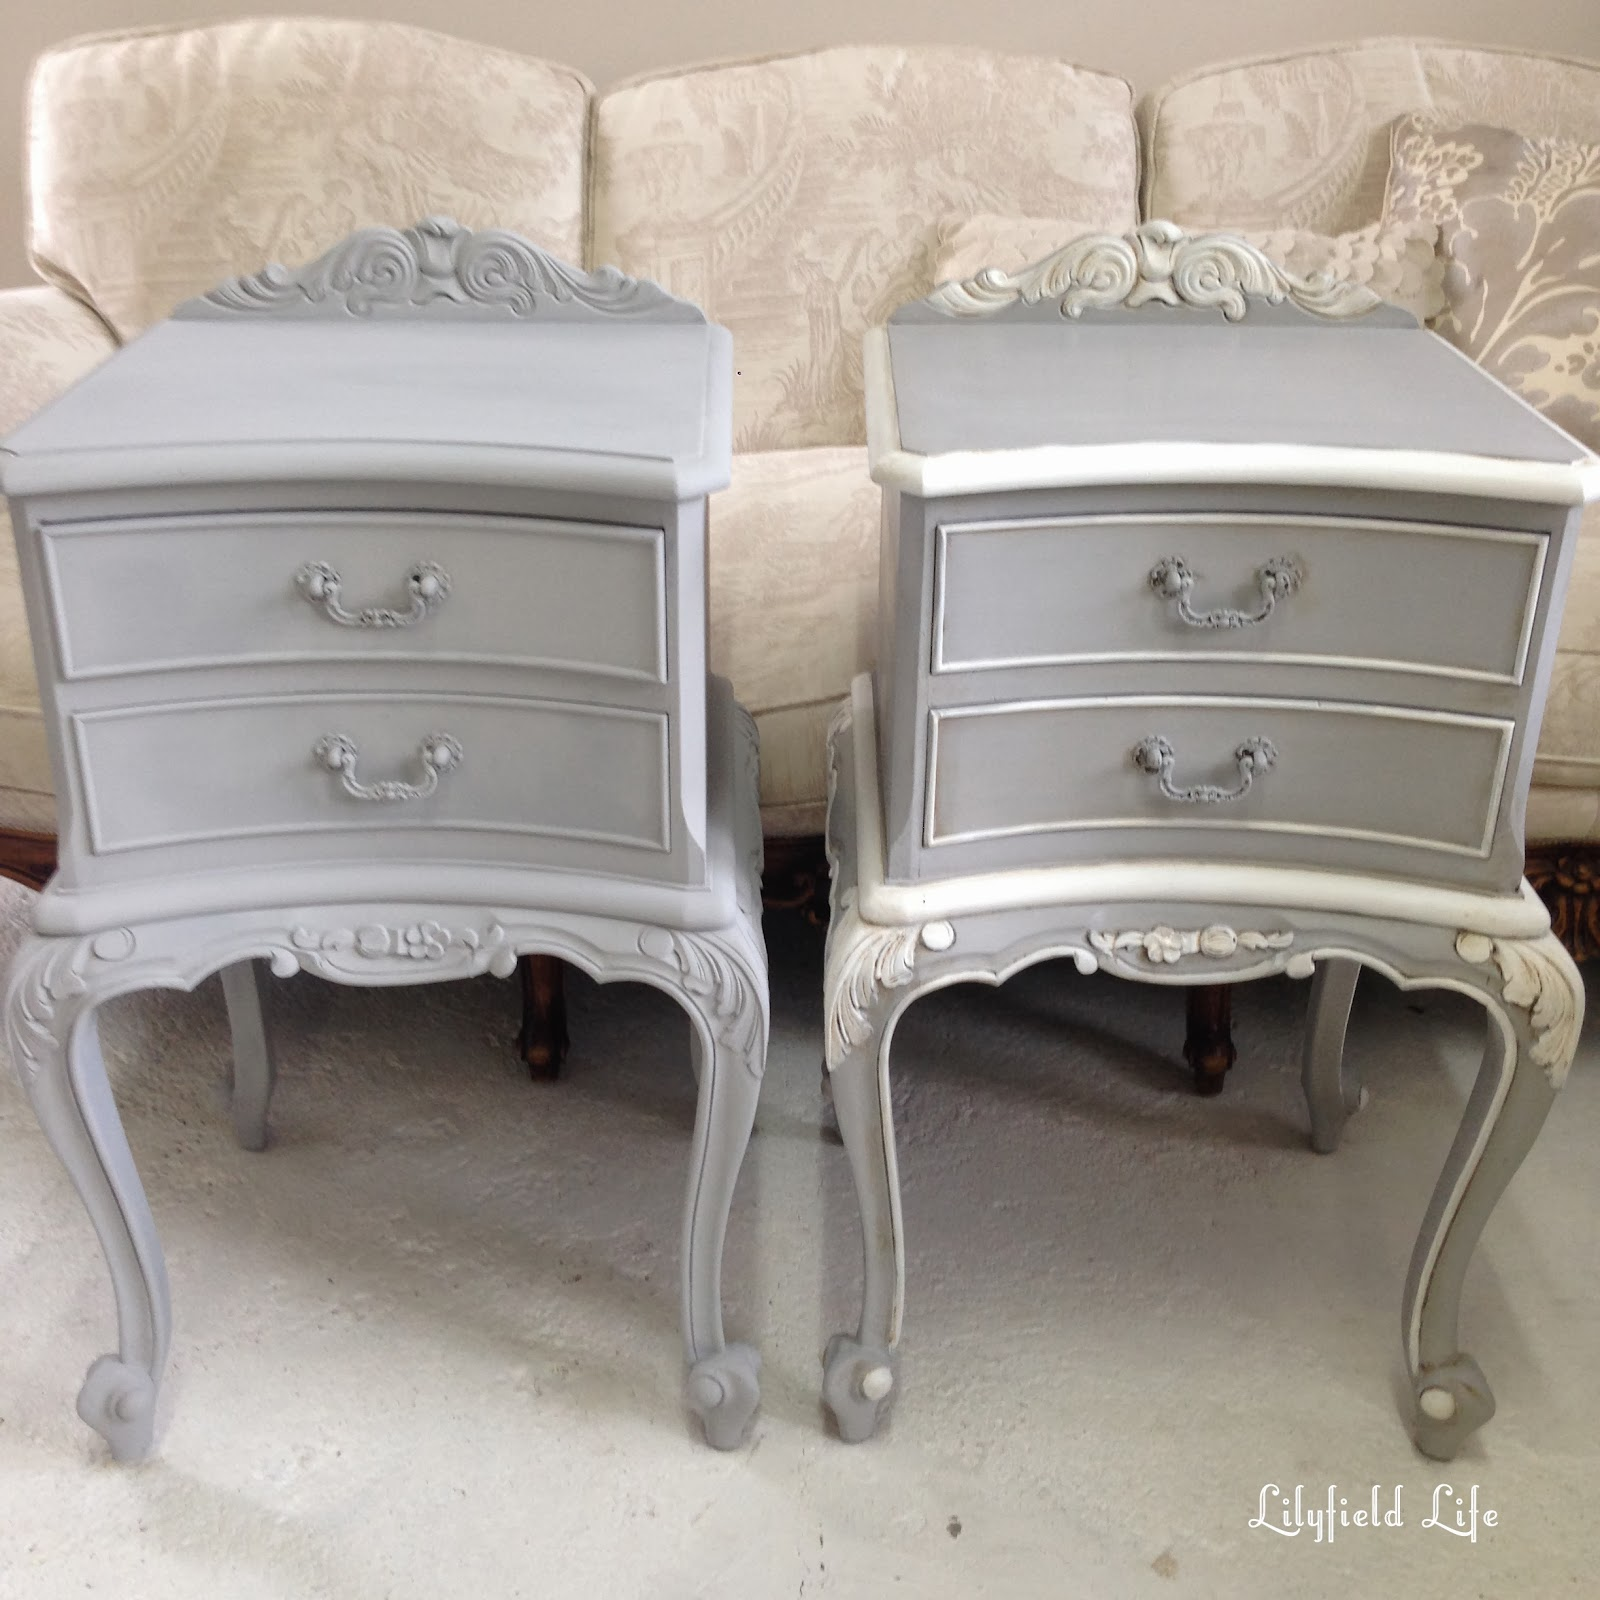 Painting Ornate Details   Antique French Bedside Tables